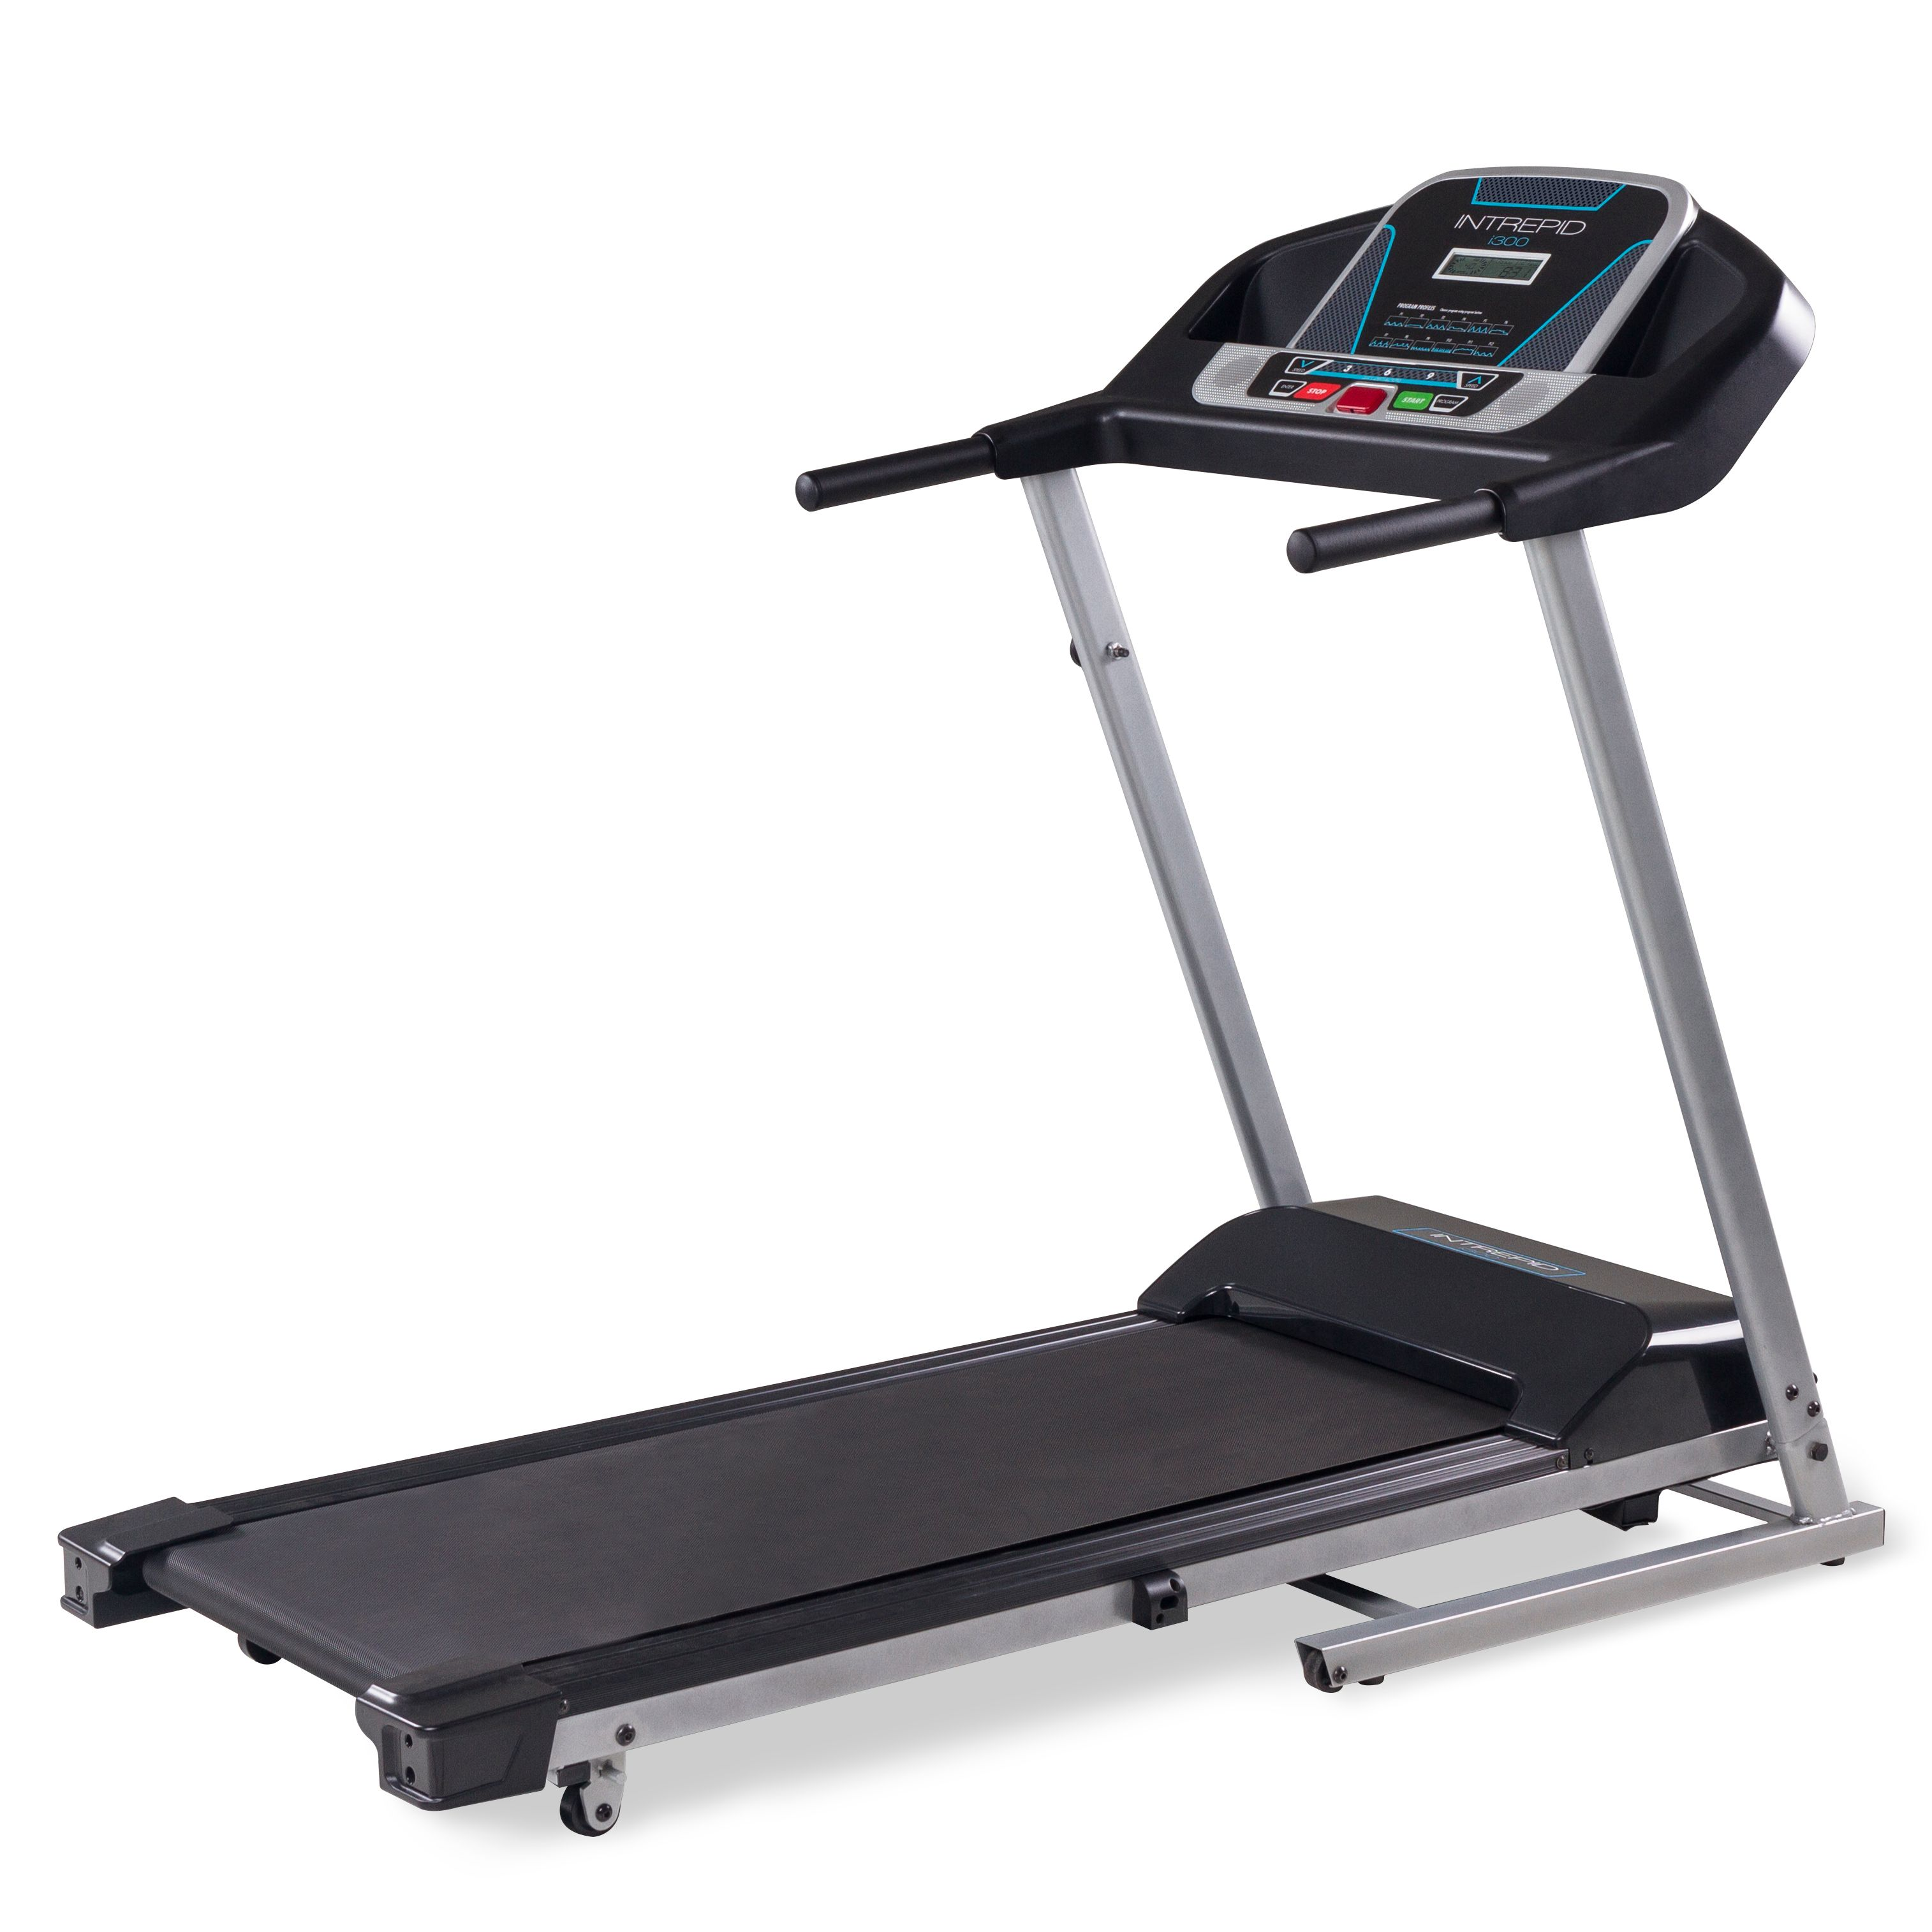 Intrepid I300 Treadmill With Lcd Display And Cushioned Deck Technology